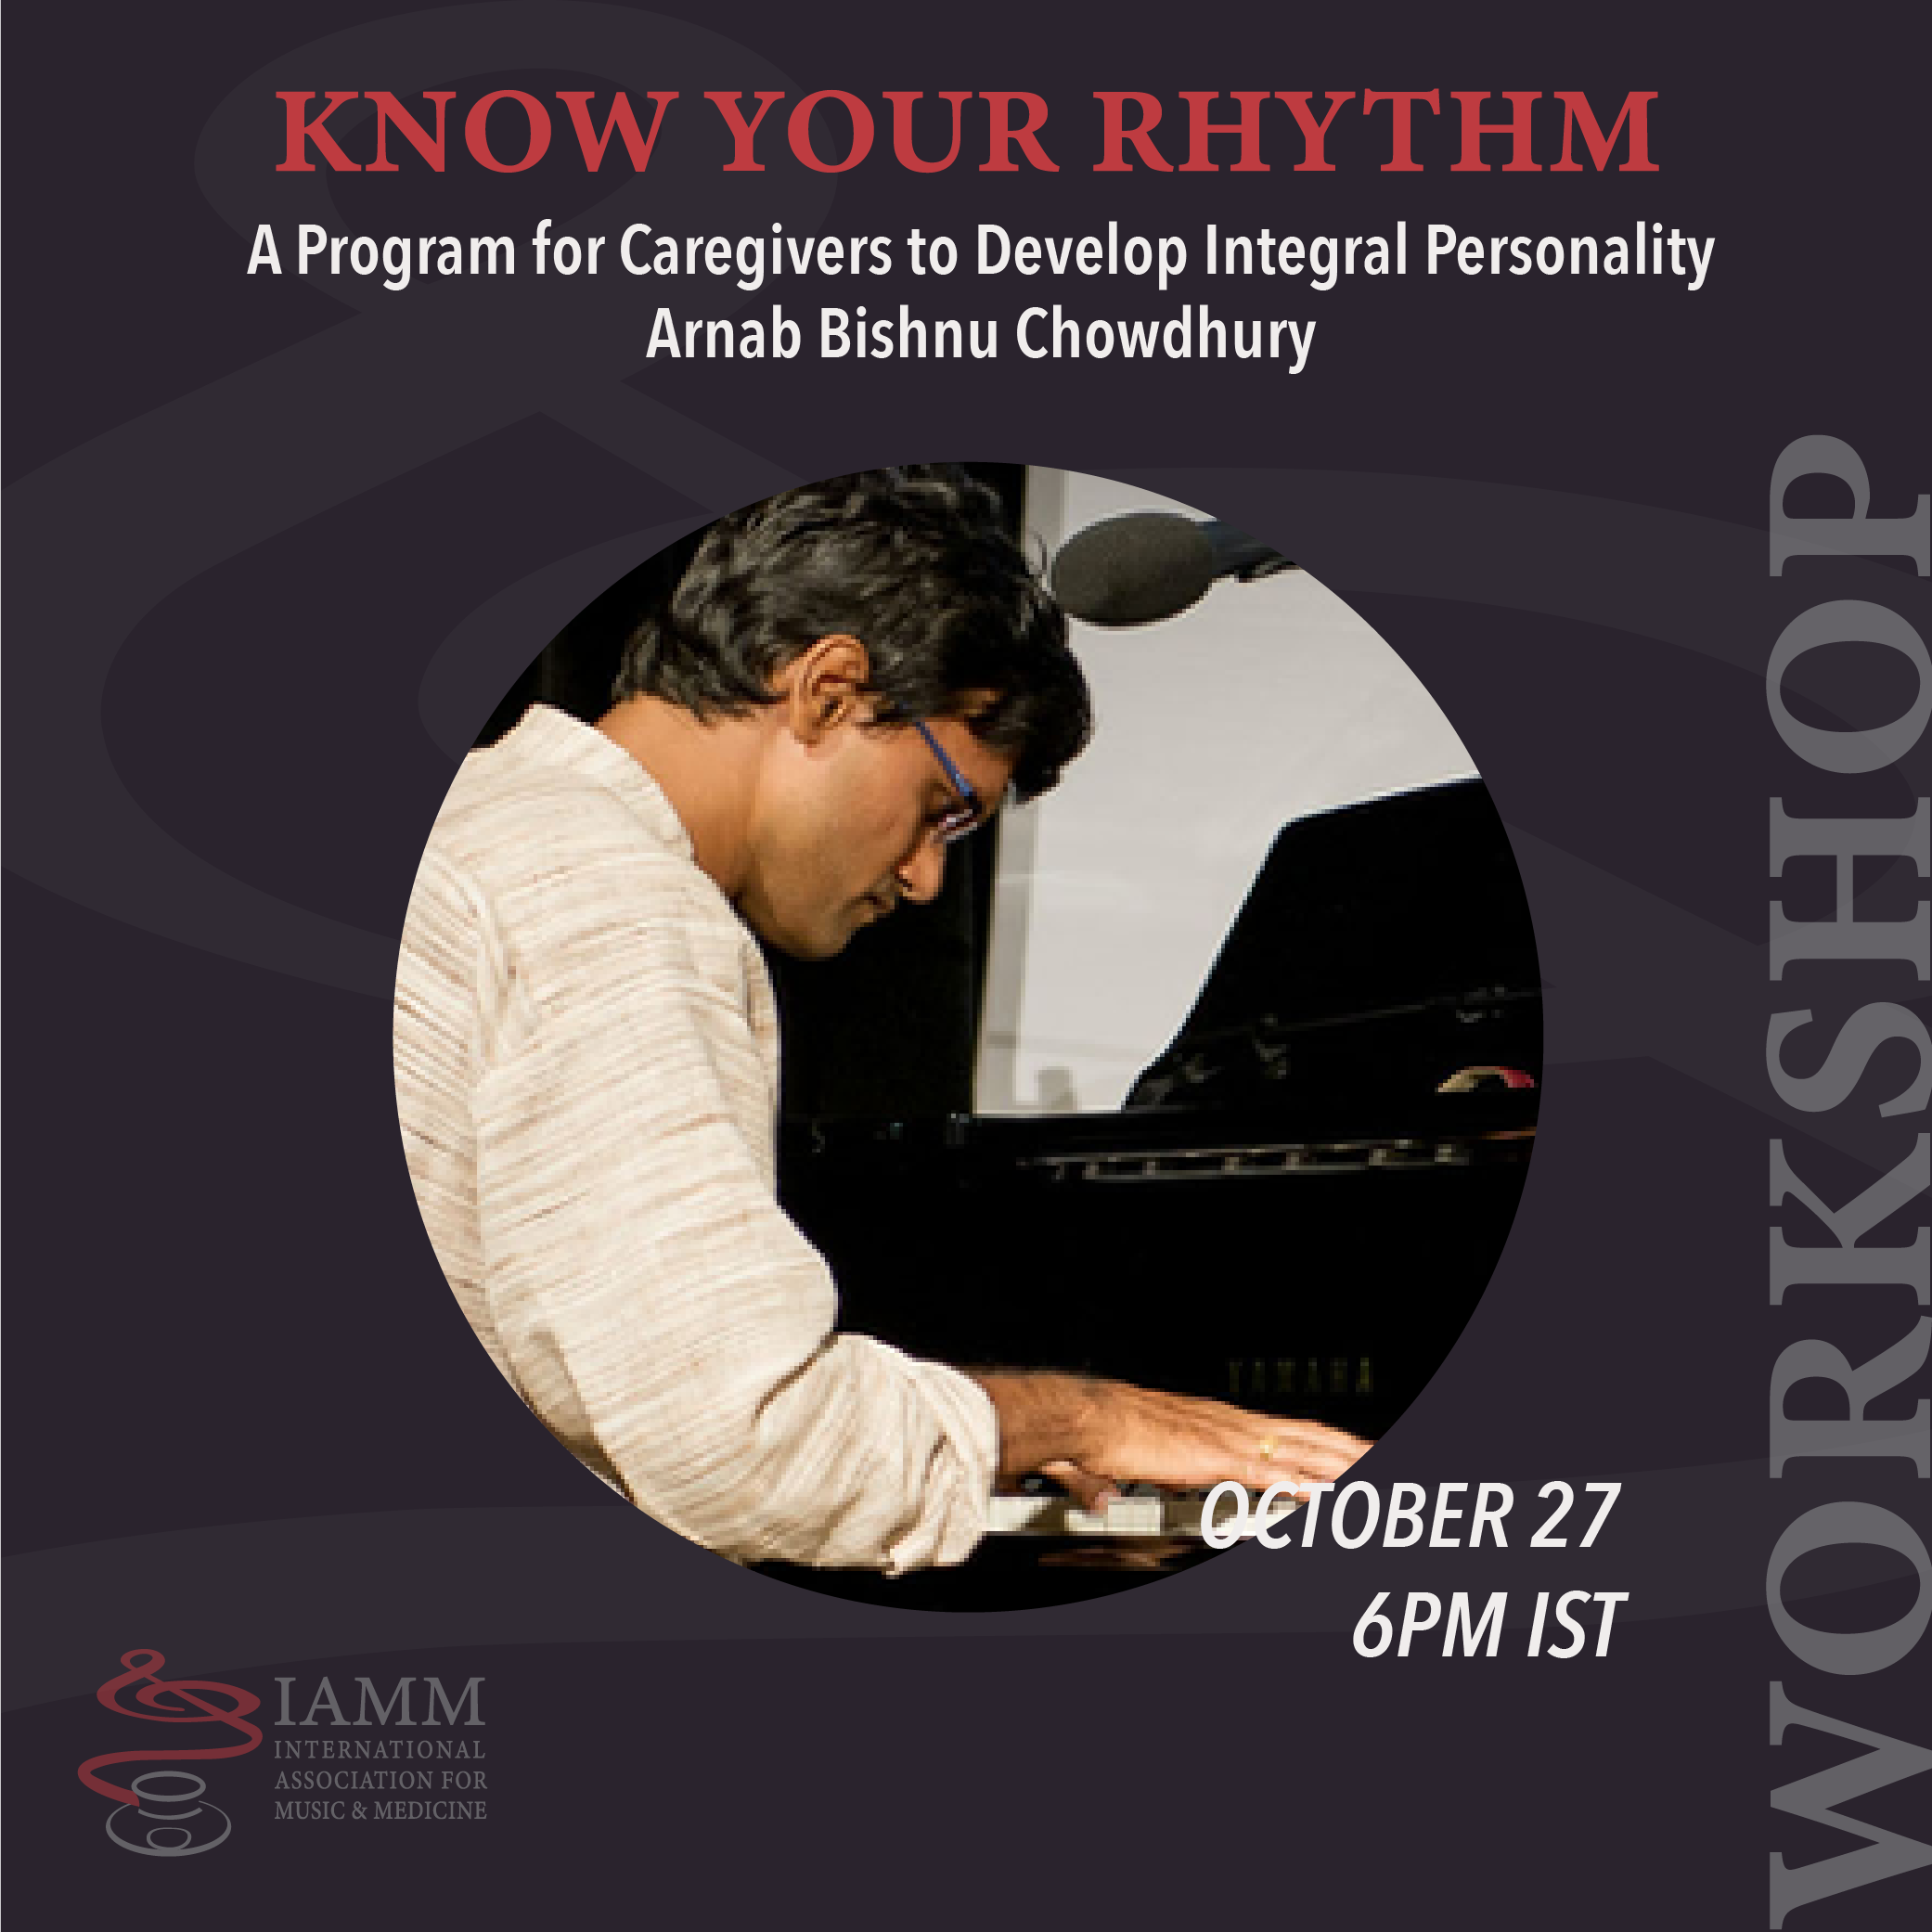 Know your rhythm-14